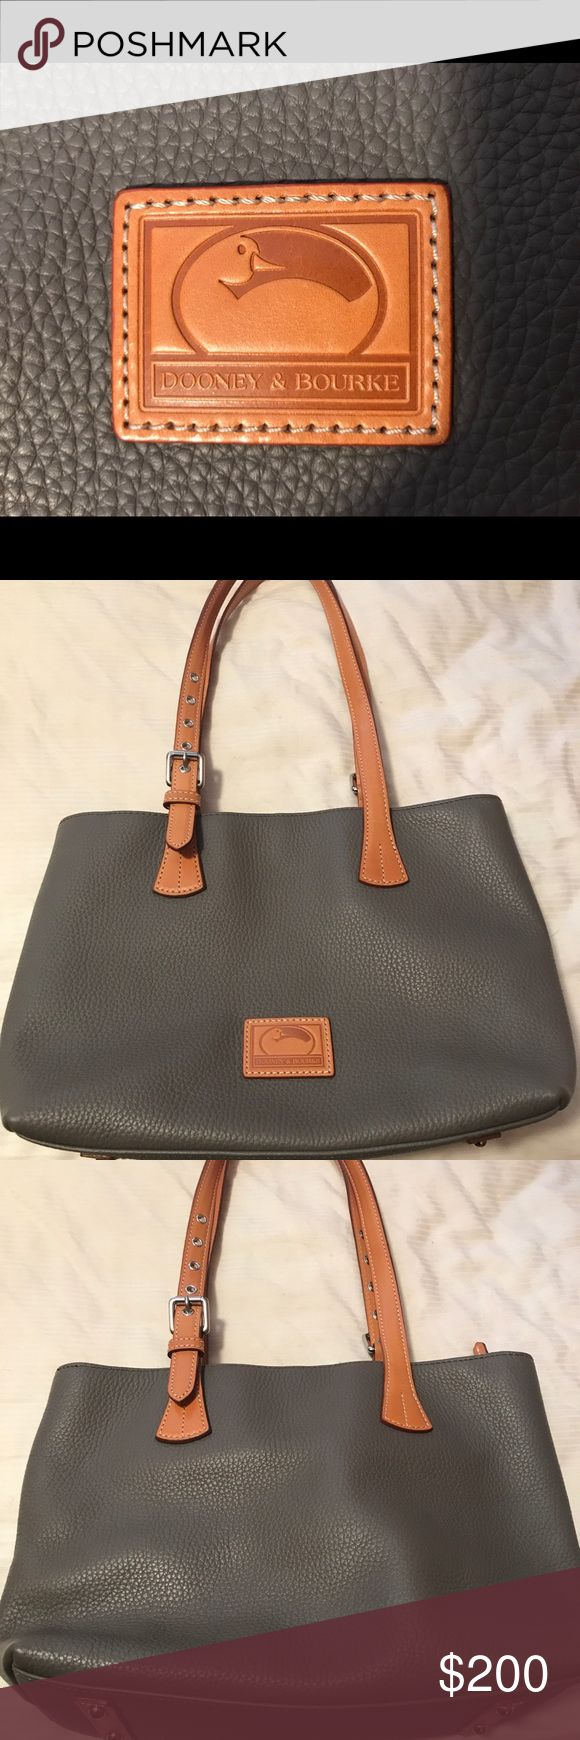 Dooney & Bourke Pebble Leather Hannah Tote Beautiful bag by D & B. Only used for 2 weeks! Excellent condition. Selling now at Belk for $328. This is a steal for $200! The color as described by D & B is called Elephant. Dooney & Bourke Bags Totes